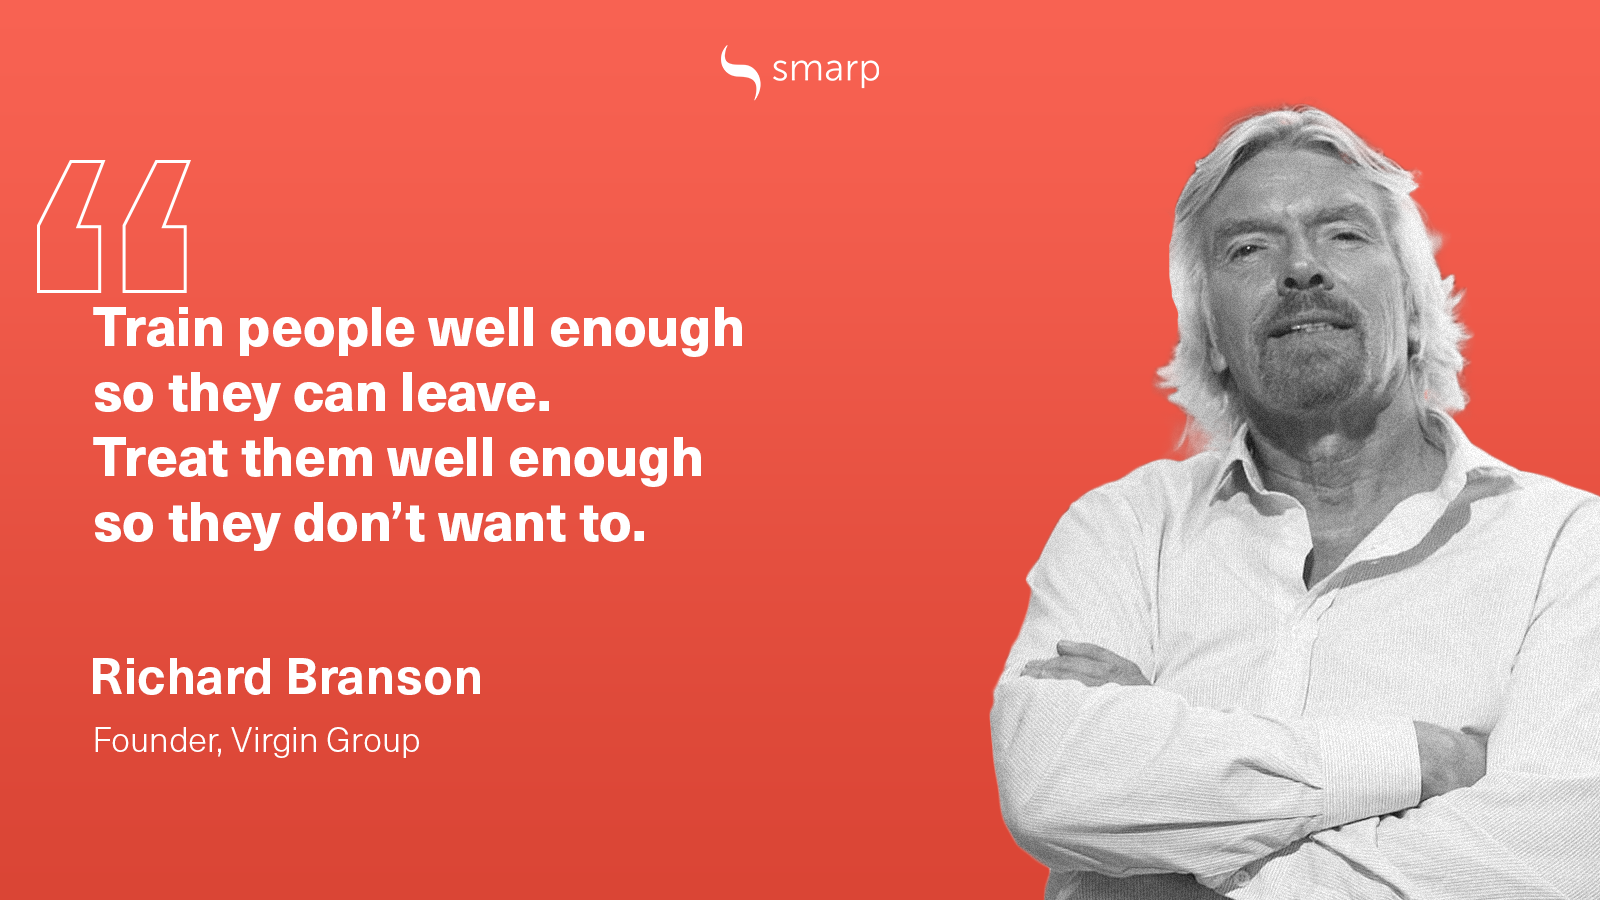 Richard Branson on why strong leadership skills are essential in the workplace